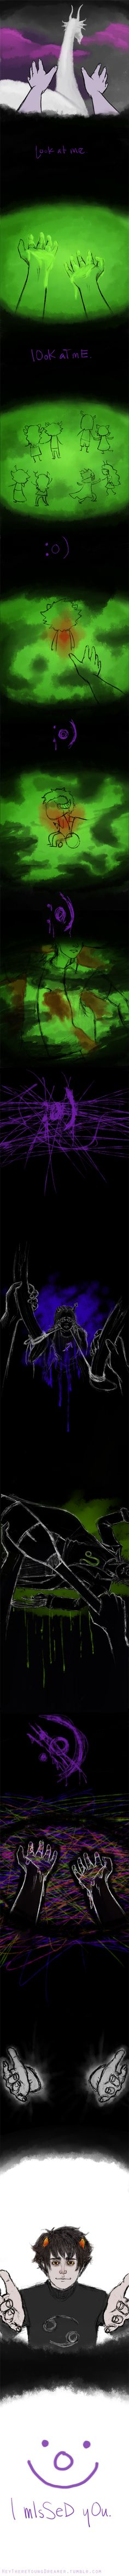 'I missed you.' wow. now i really can't hate Gamzee. so sad!!  Tags: Anime, Homestuck, Gamzee Makara, Karkat Vantas, Lusus, friends, moirails